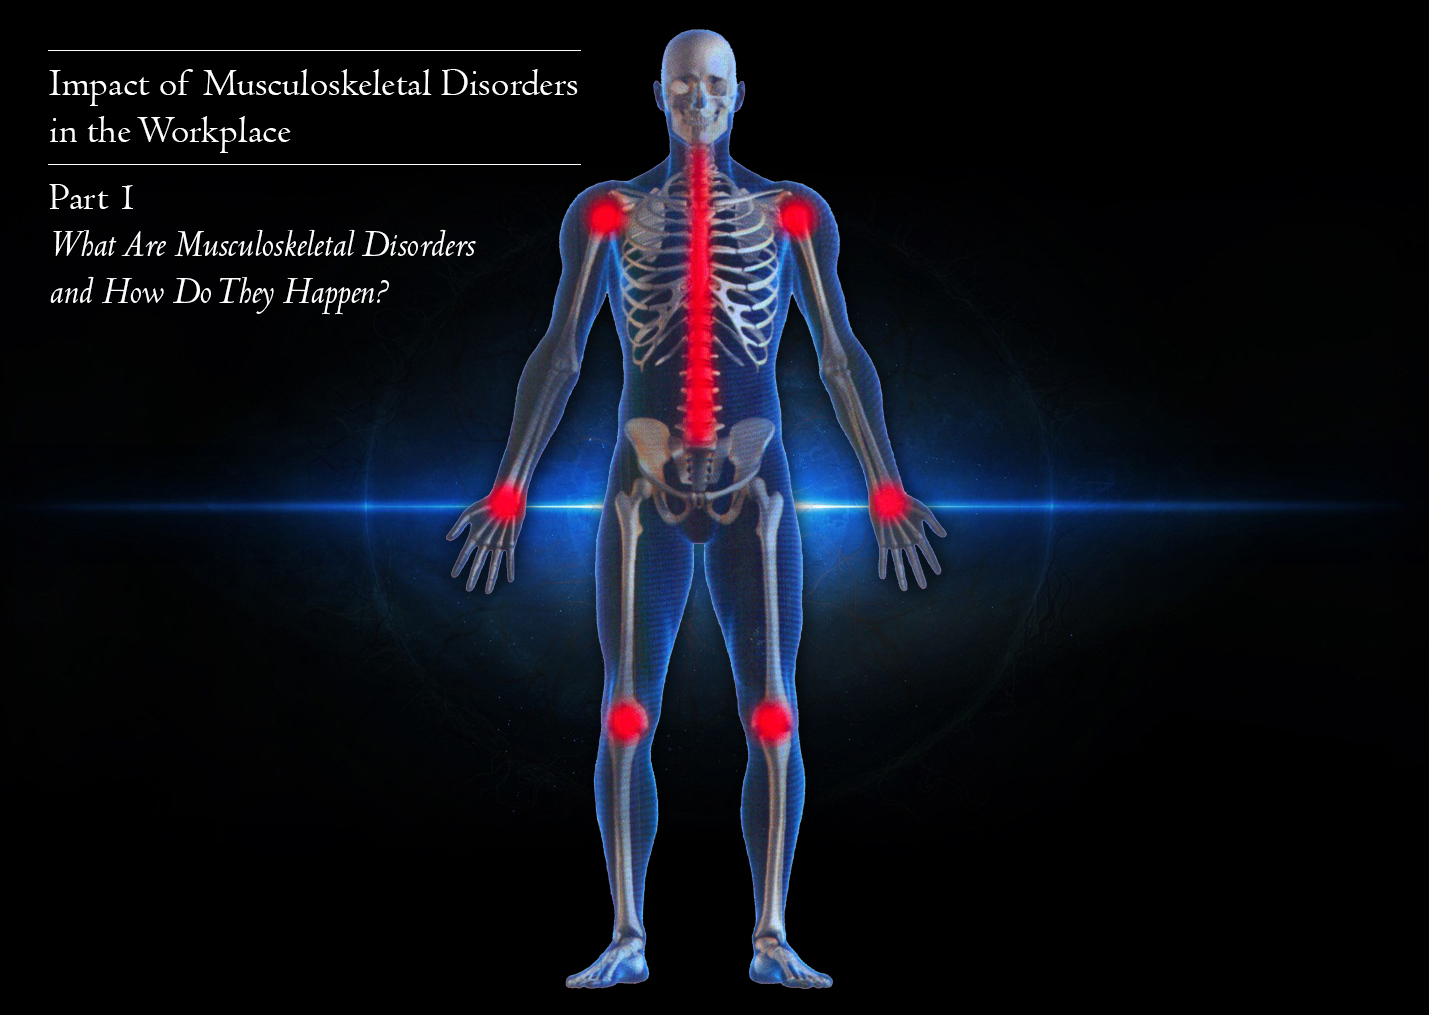 Impact of Musculoskeletal Disorders in the Workplace